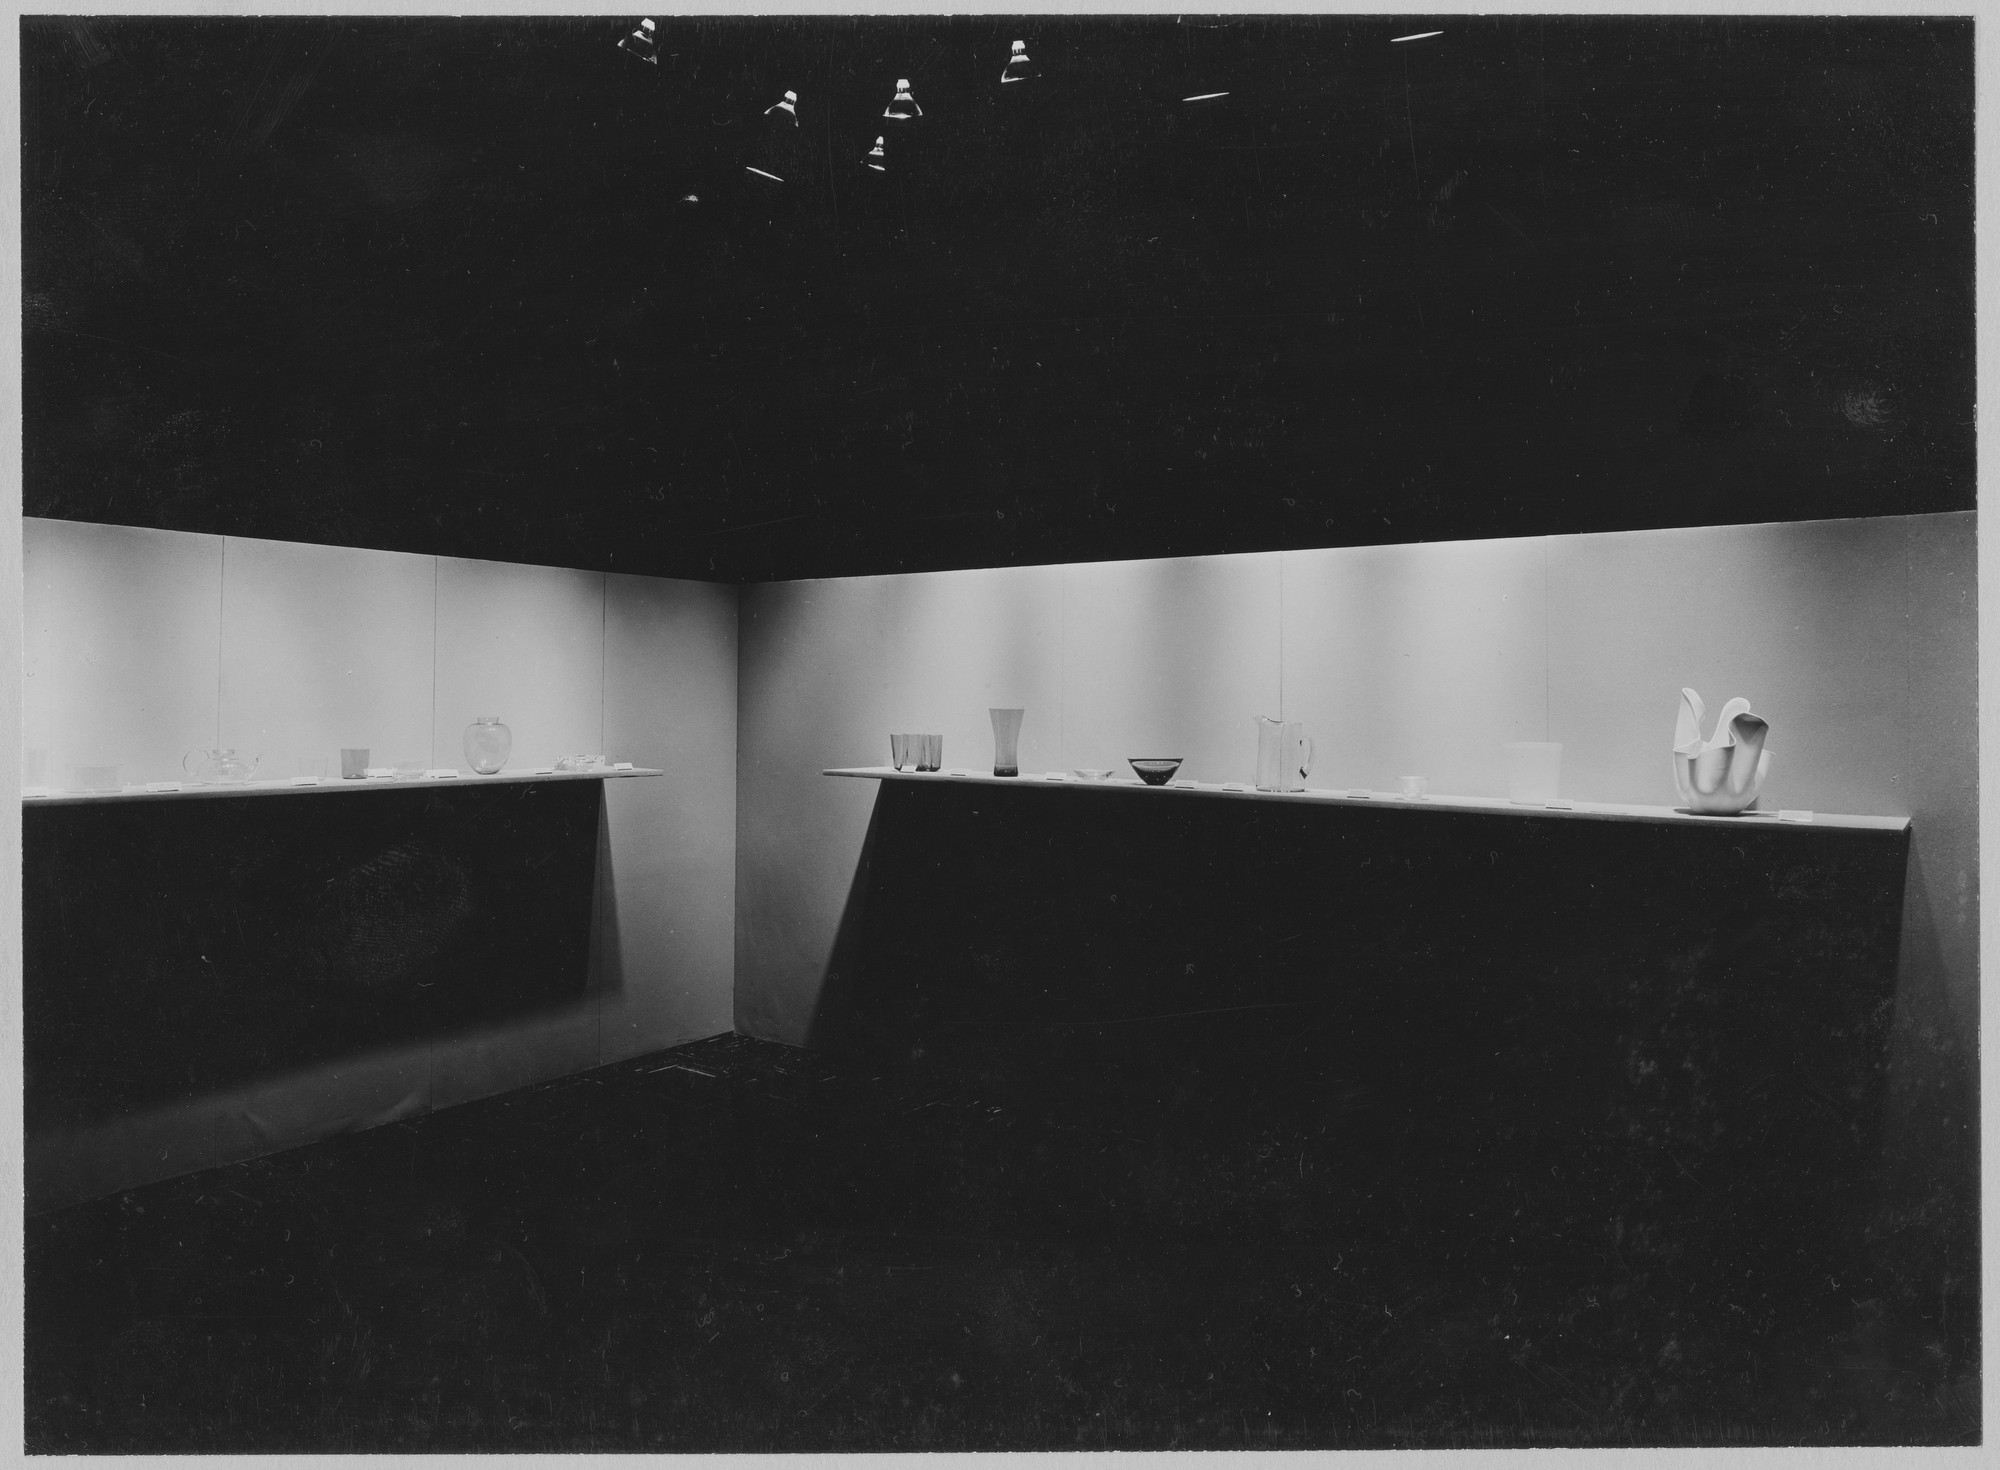 "Installation view of the exhibition, ""Glass from the Museum of Modern Art Collection."" October 25, 1955–January 8, 1956. Photographic Archive. The Museum of Modern Art Archives, New York. IN588.1. Photograph by Soichi Sunami."